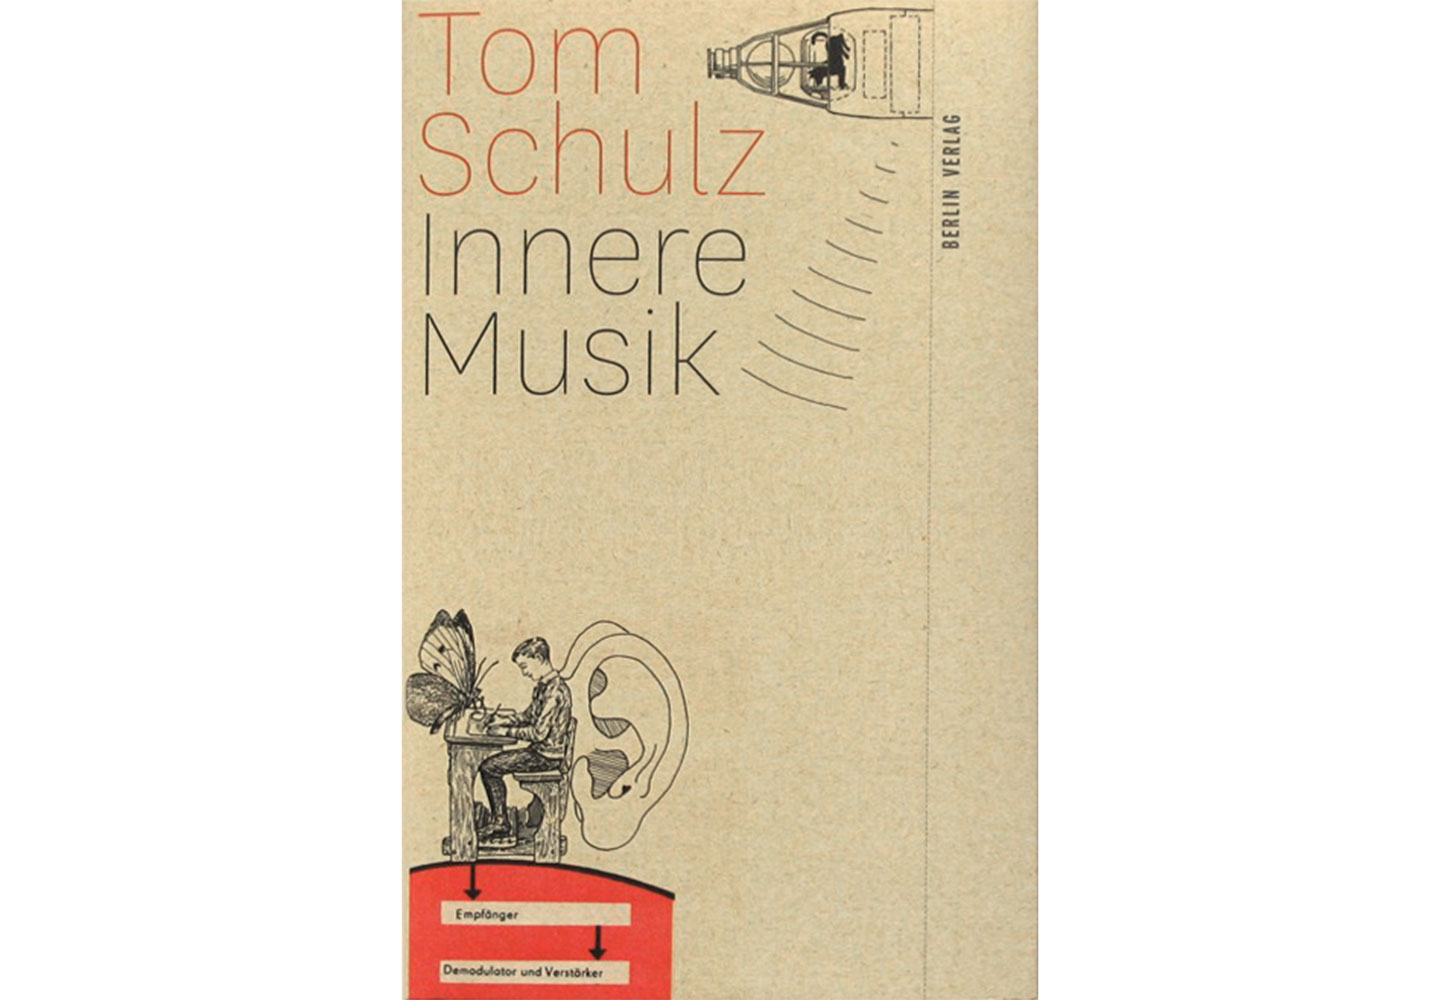 aline-helmcke-publication-tom-schulz-innere-musik-cover